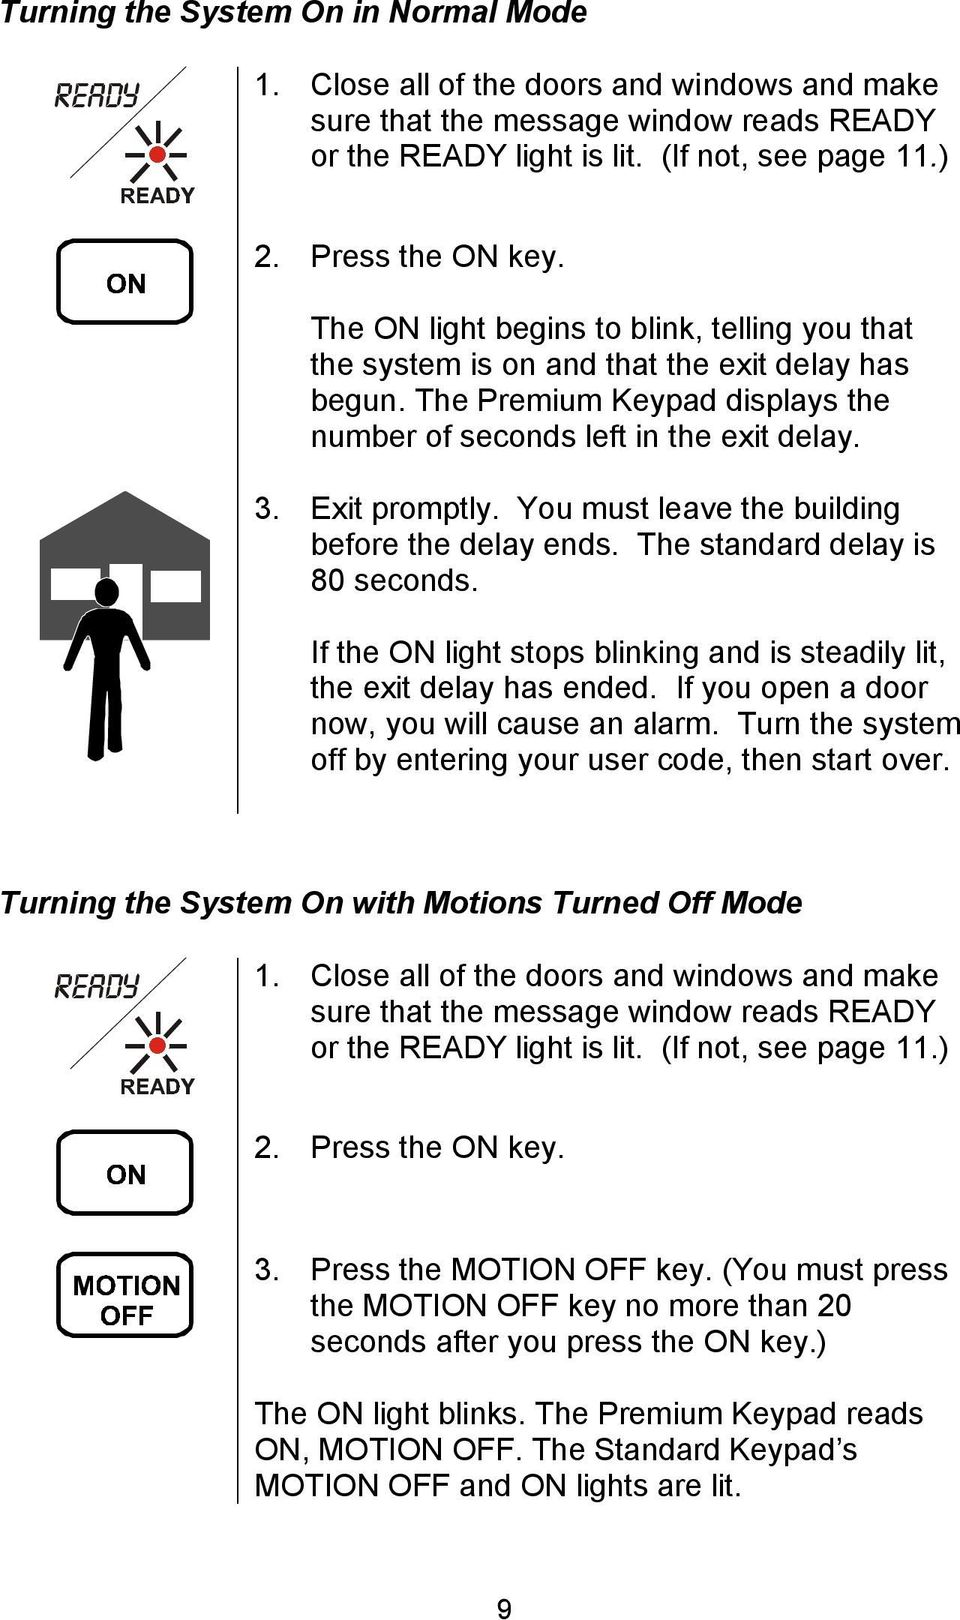 You must leave the building before the delay ends. The standard delay is 80 seconds. If the ON light stops blinking and is steadily lit, the exit delay has ended.